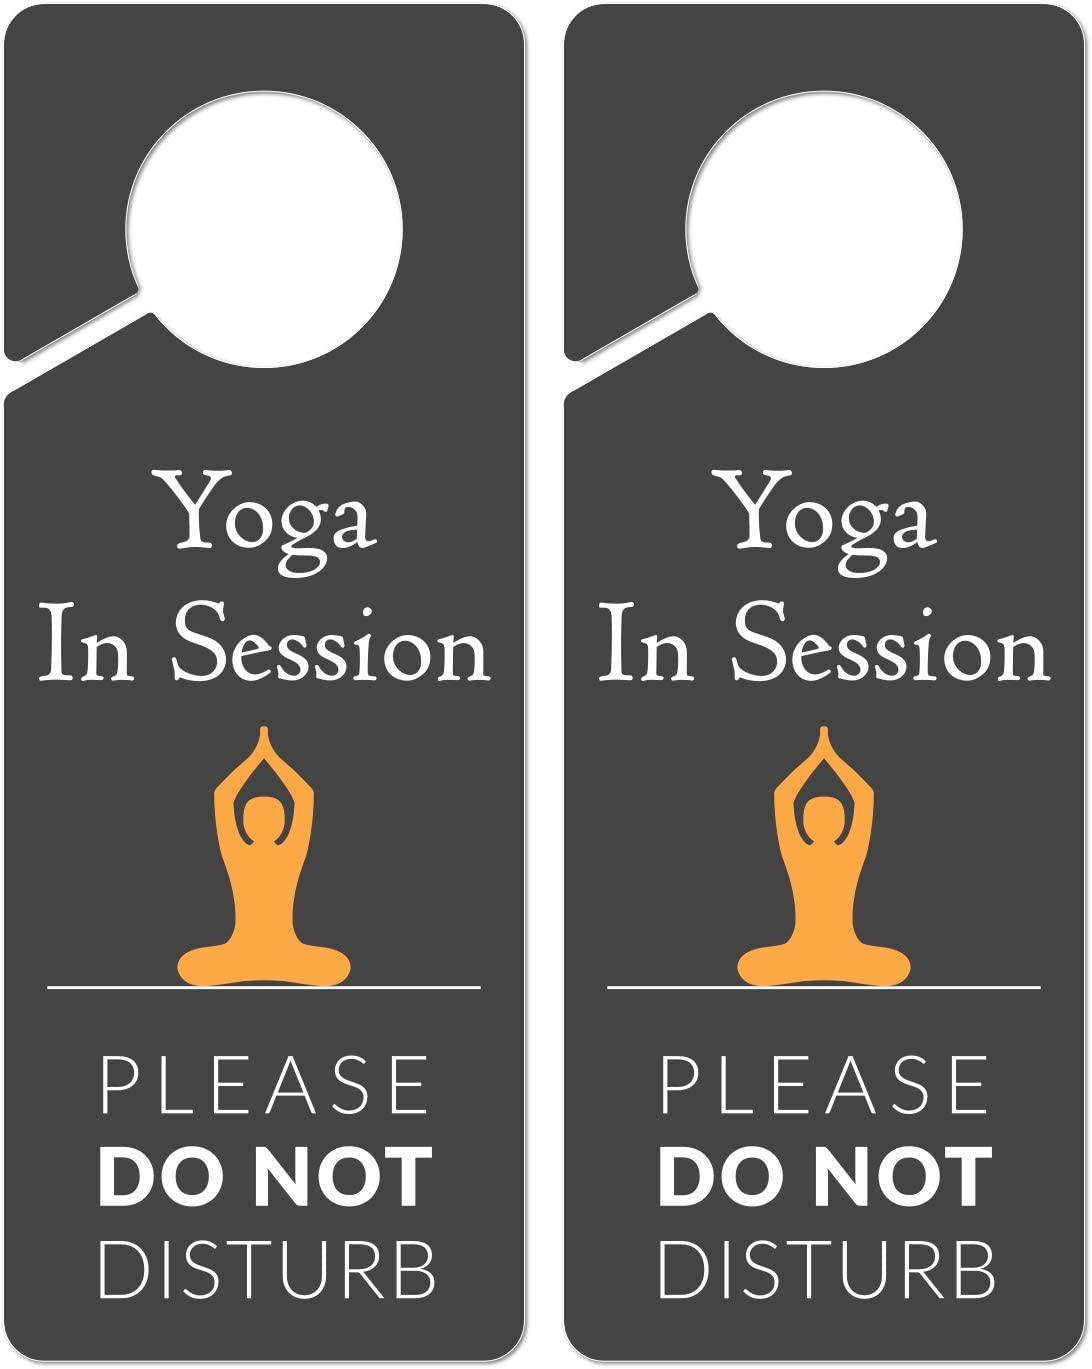 4 Pack Do Not dDisturb Door Hanger Sign Door Knob Hanger Sign Yoga in Session for Hotel Room Home Decoration PVC Plastic 9.25x3.5 Inches Double-Sided